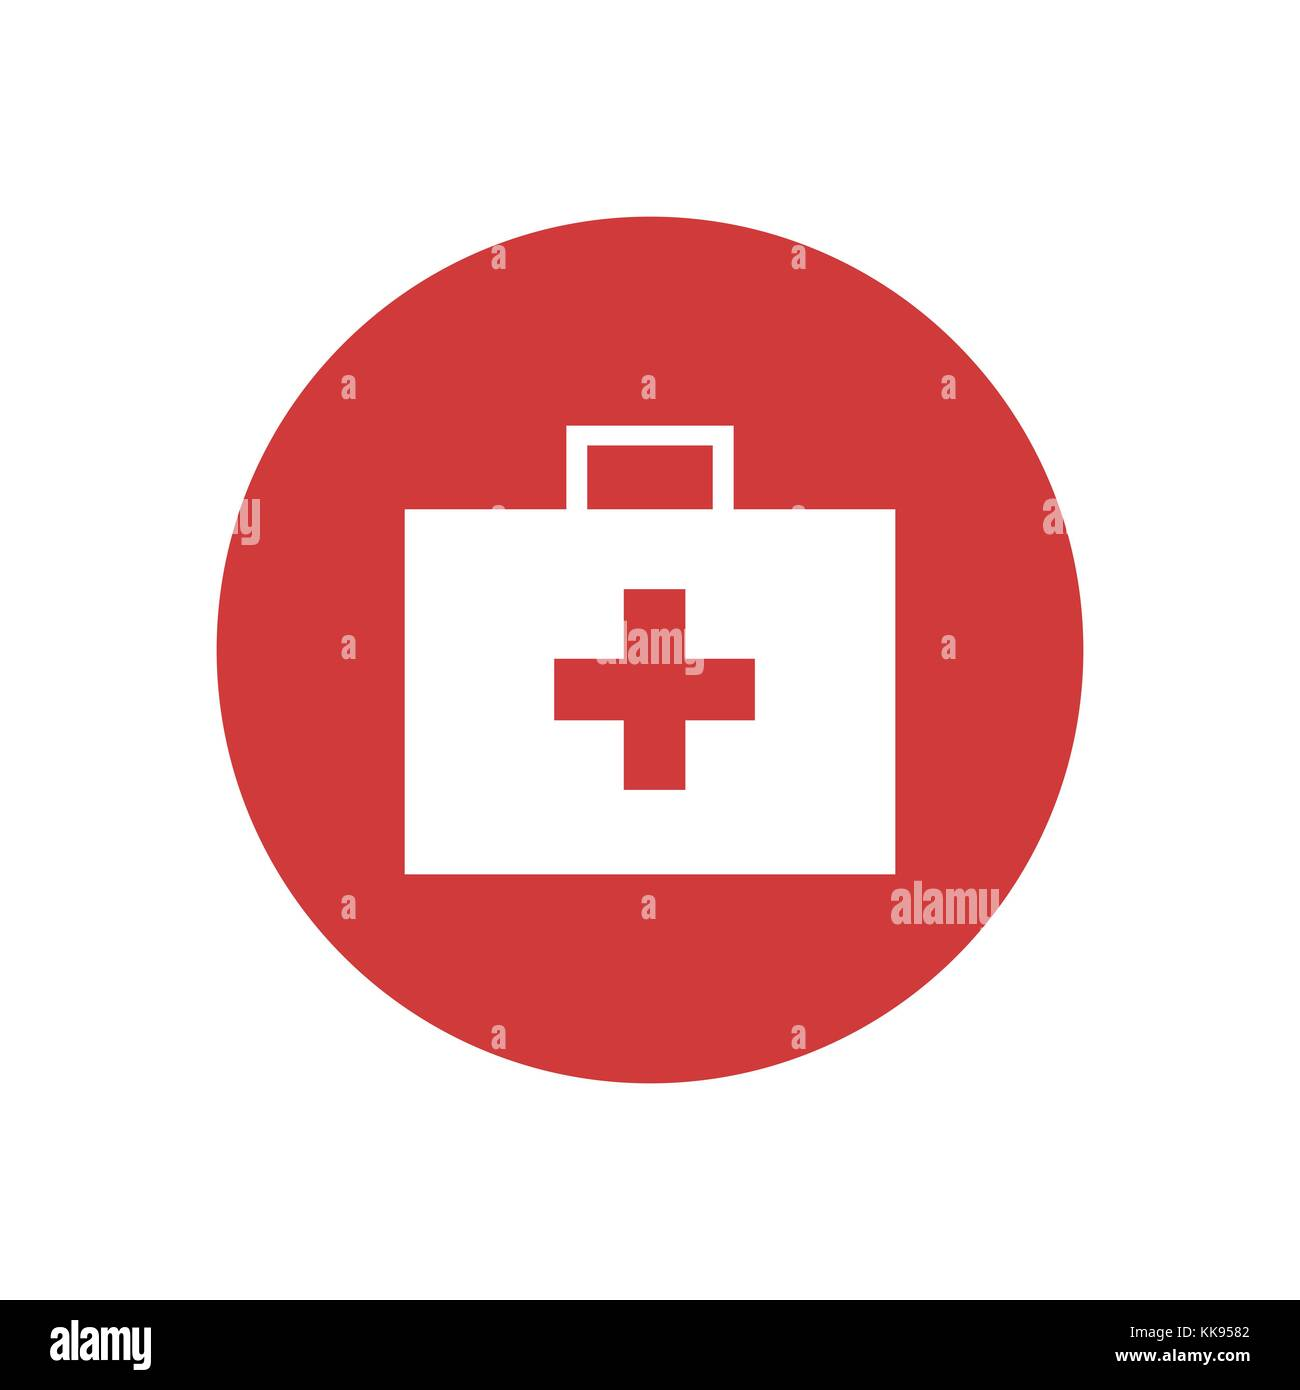 First Aid Kit Bag Icon Vector Graphic Illustration Design - Stock Image